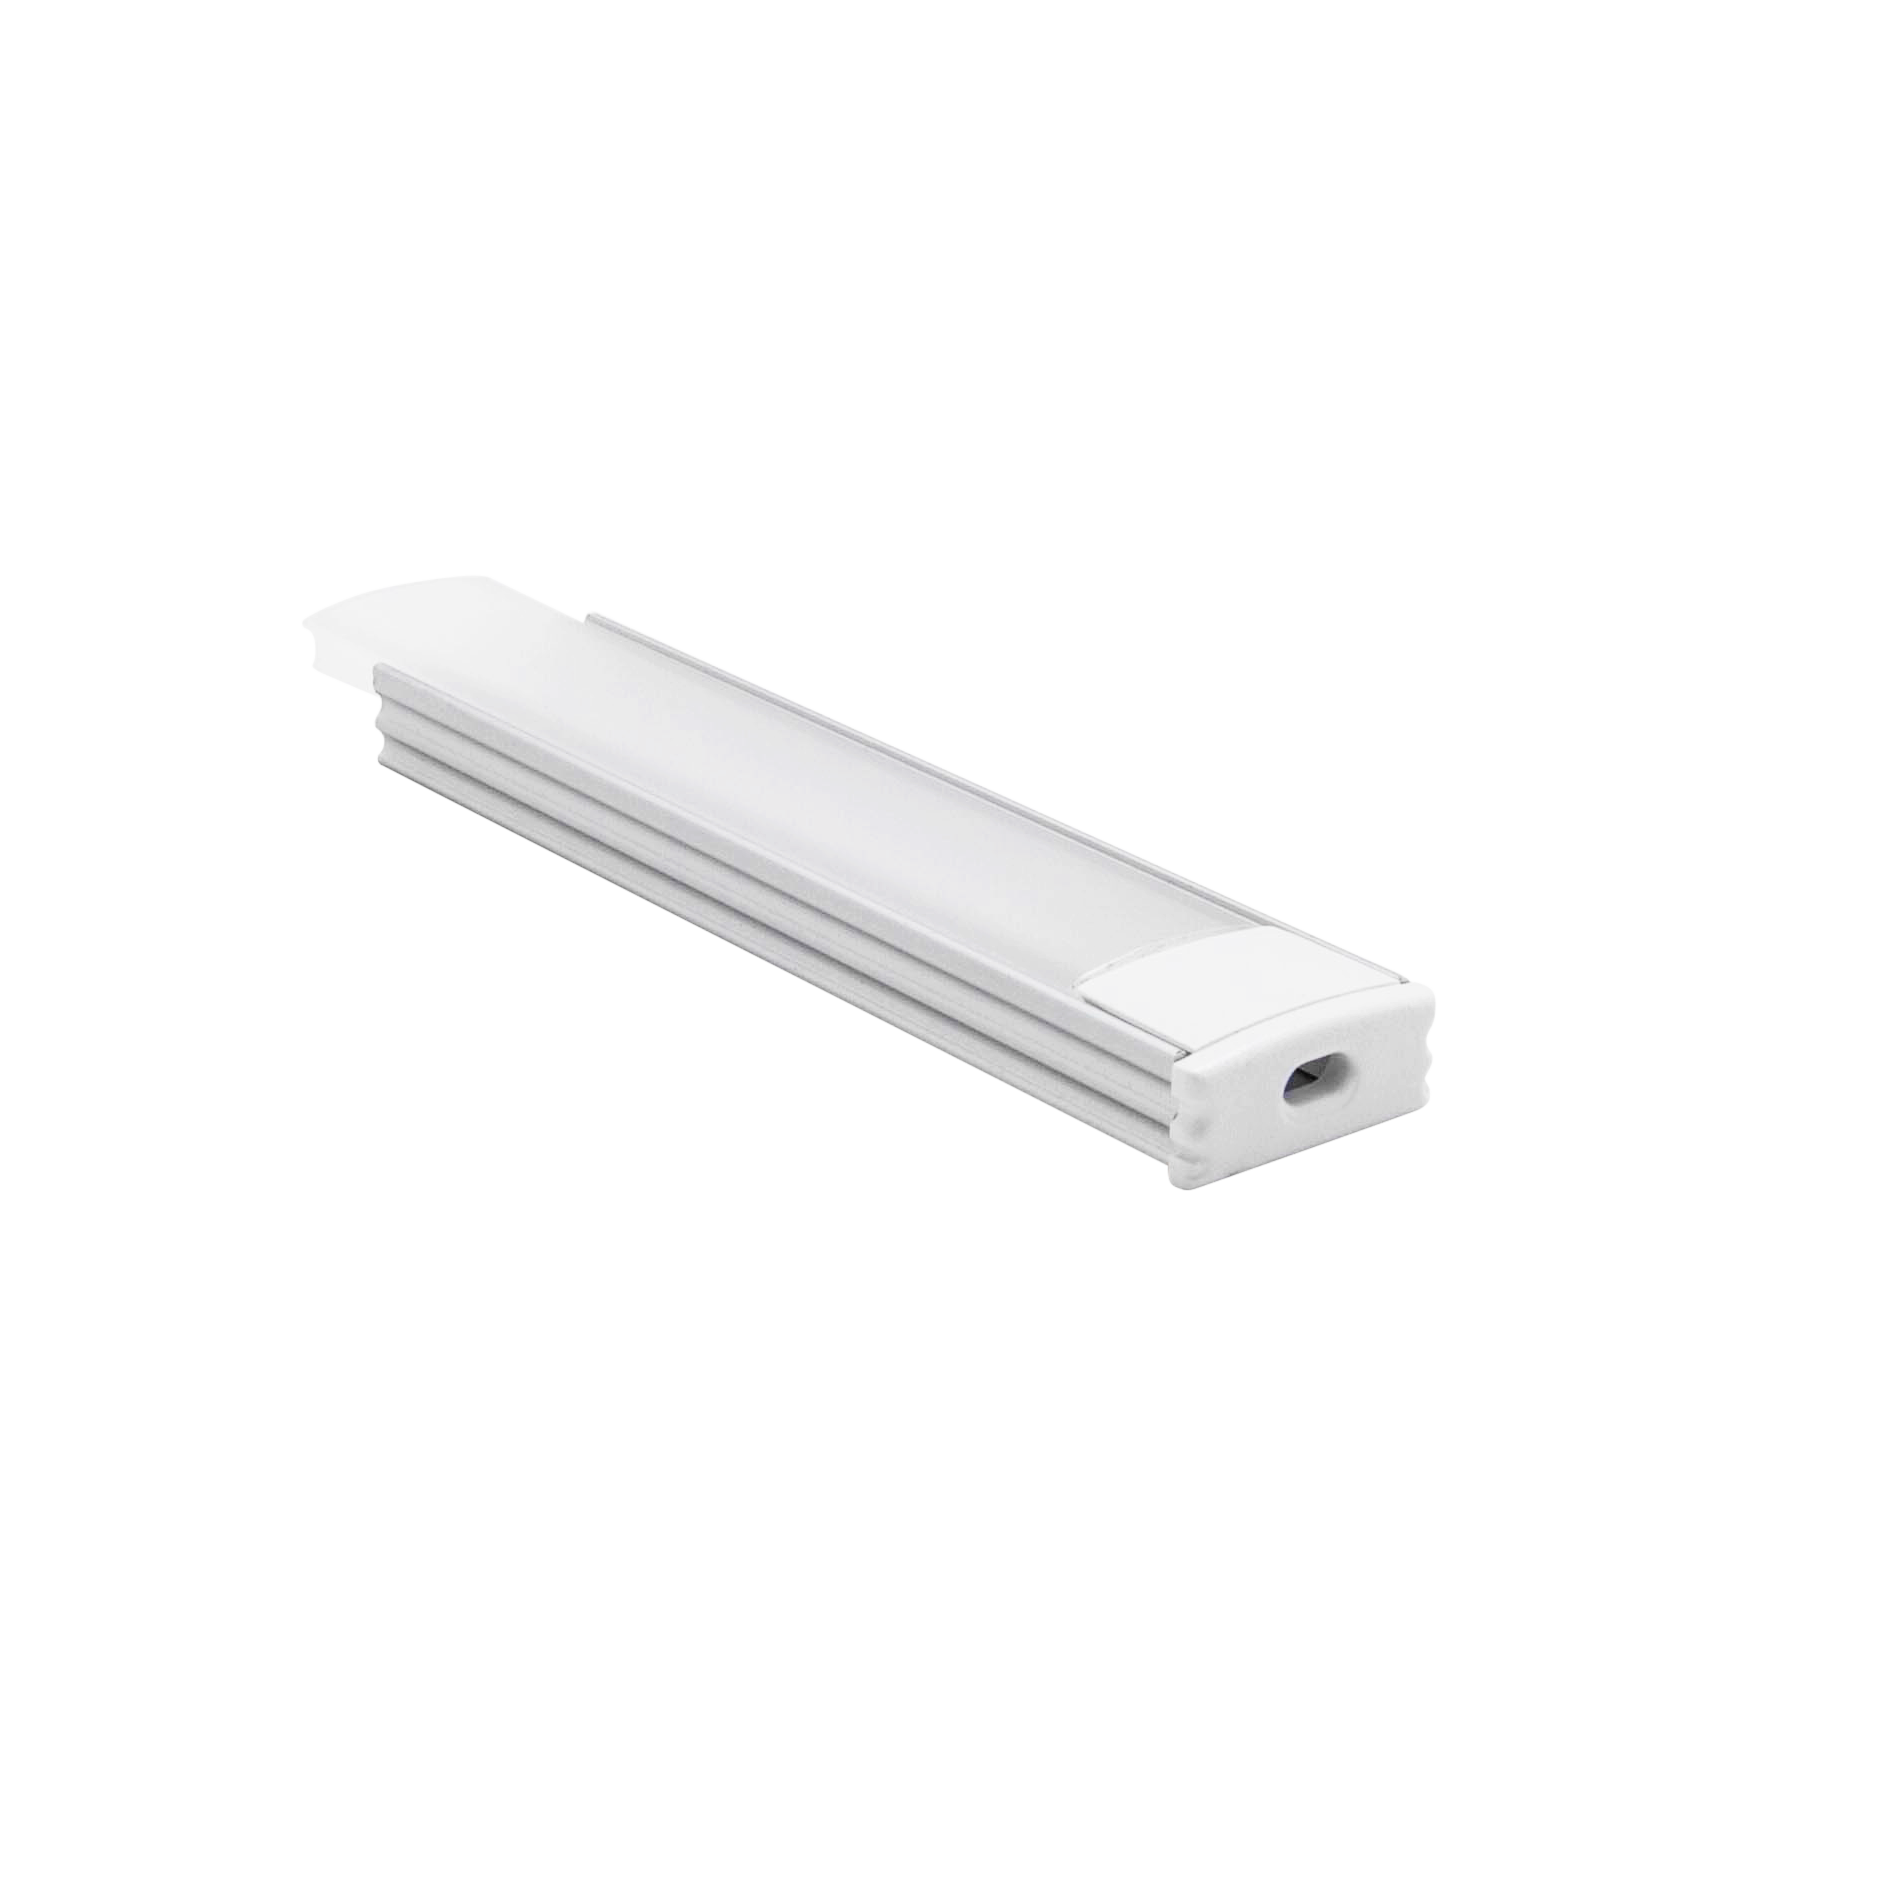 Aluminum Channel - MOSS-ALM-1707 - Moss LED